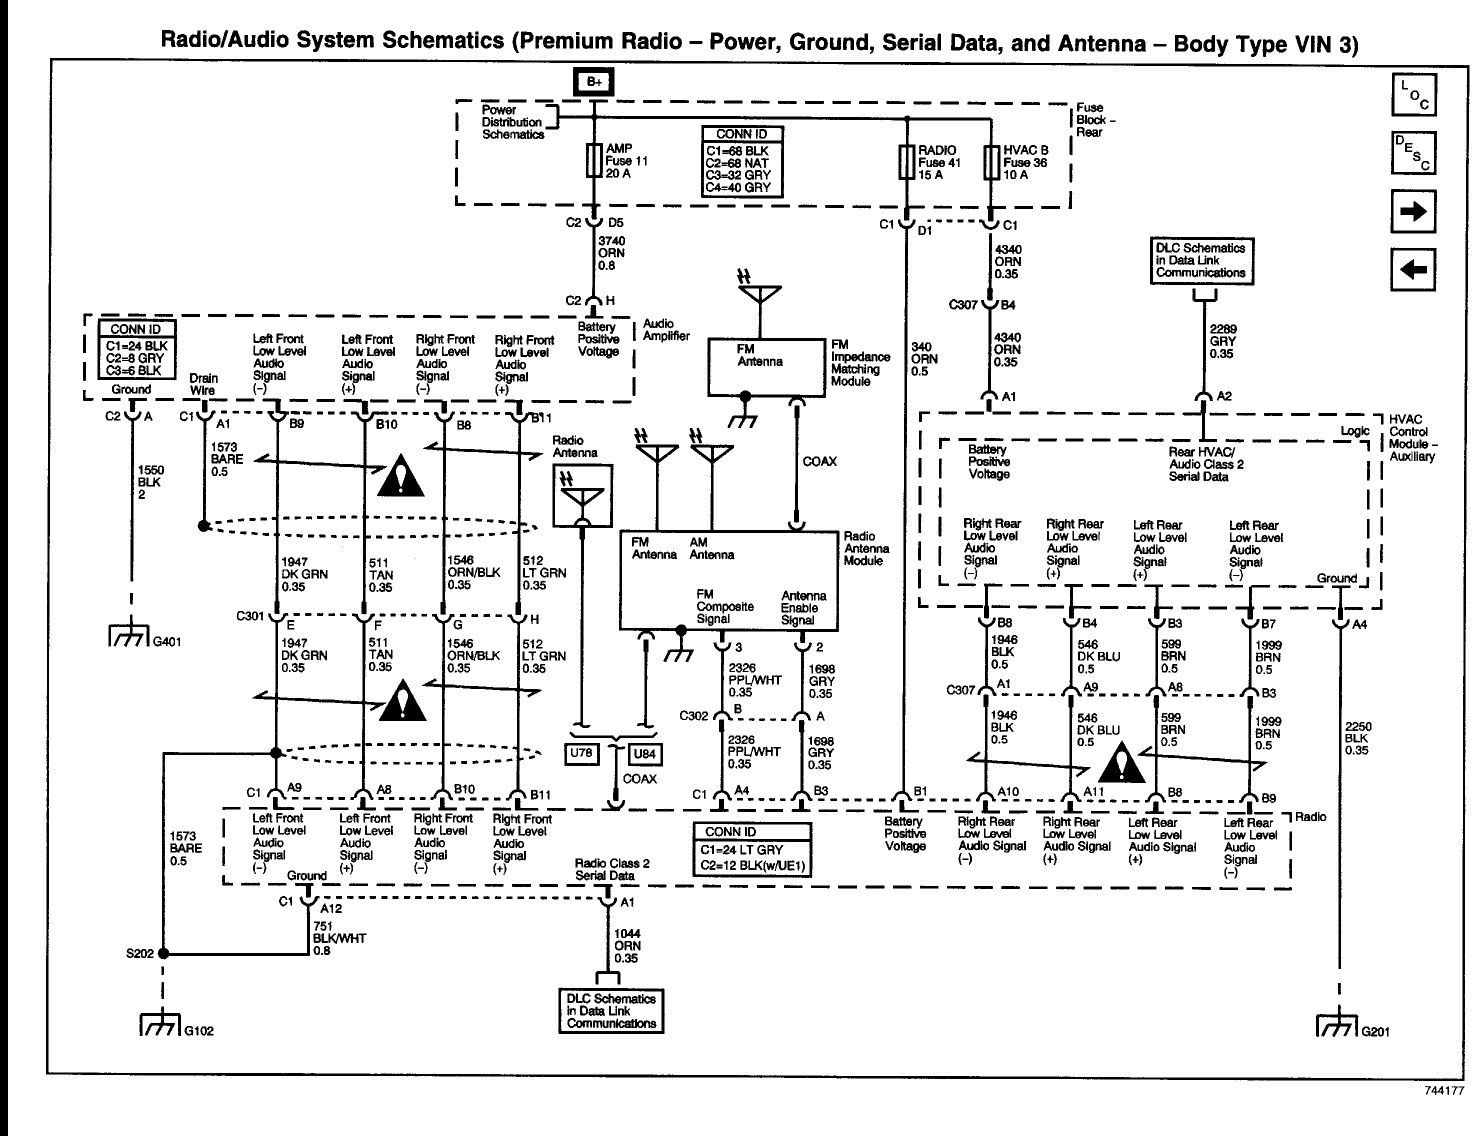 2003 Gmc Envoy Radio Wiring Diagram 2006 Impala To Printable 2002 Gmc Trucks Gmc Truck Accessories Gmc Envoy